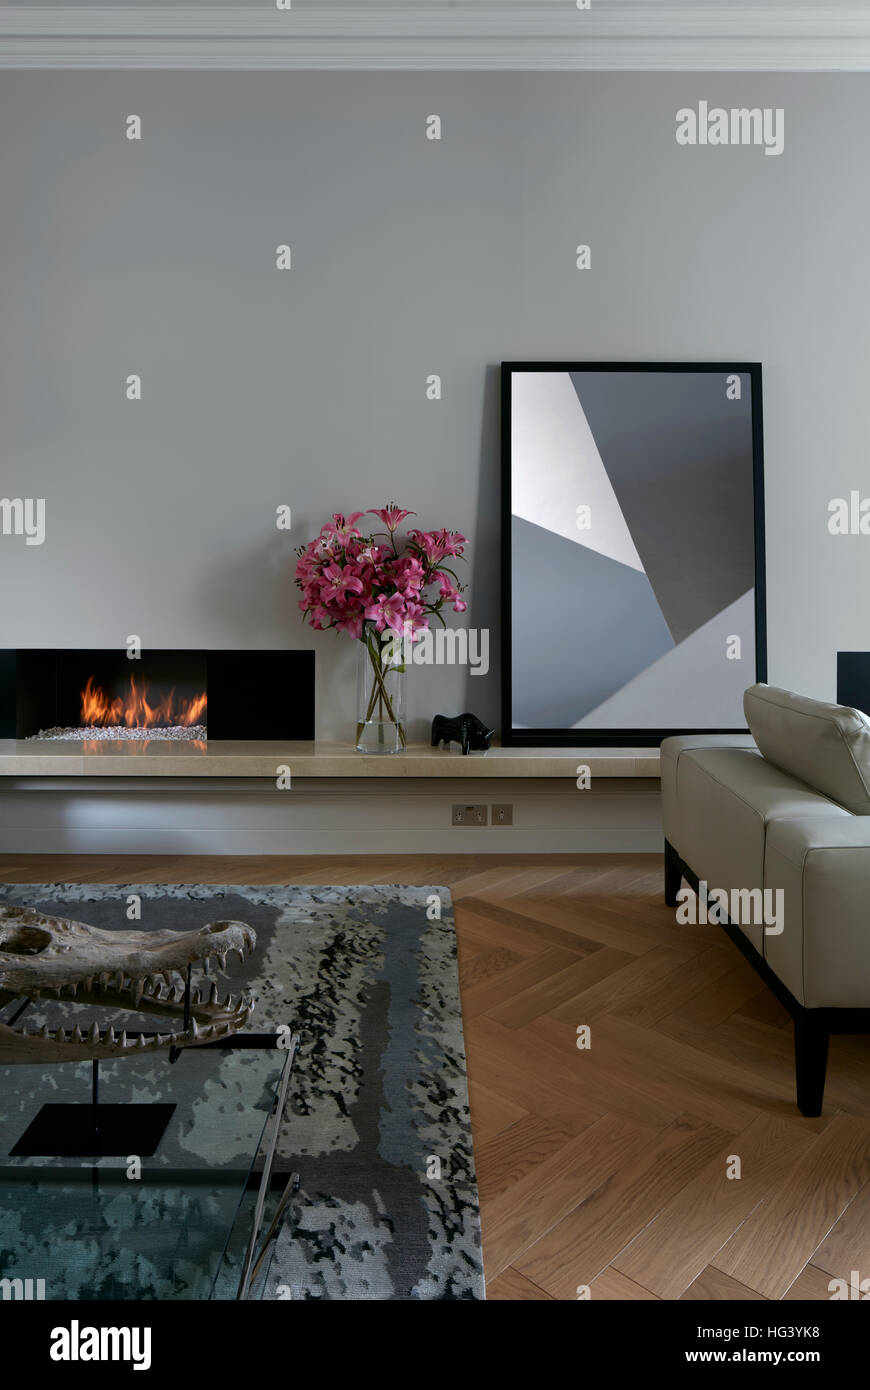 Residential building, London, UK. Interior view. - Stock Image